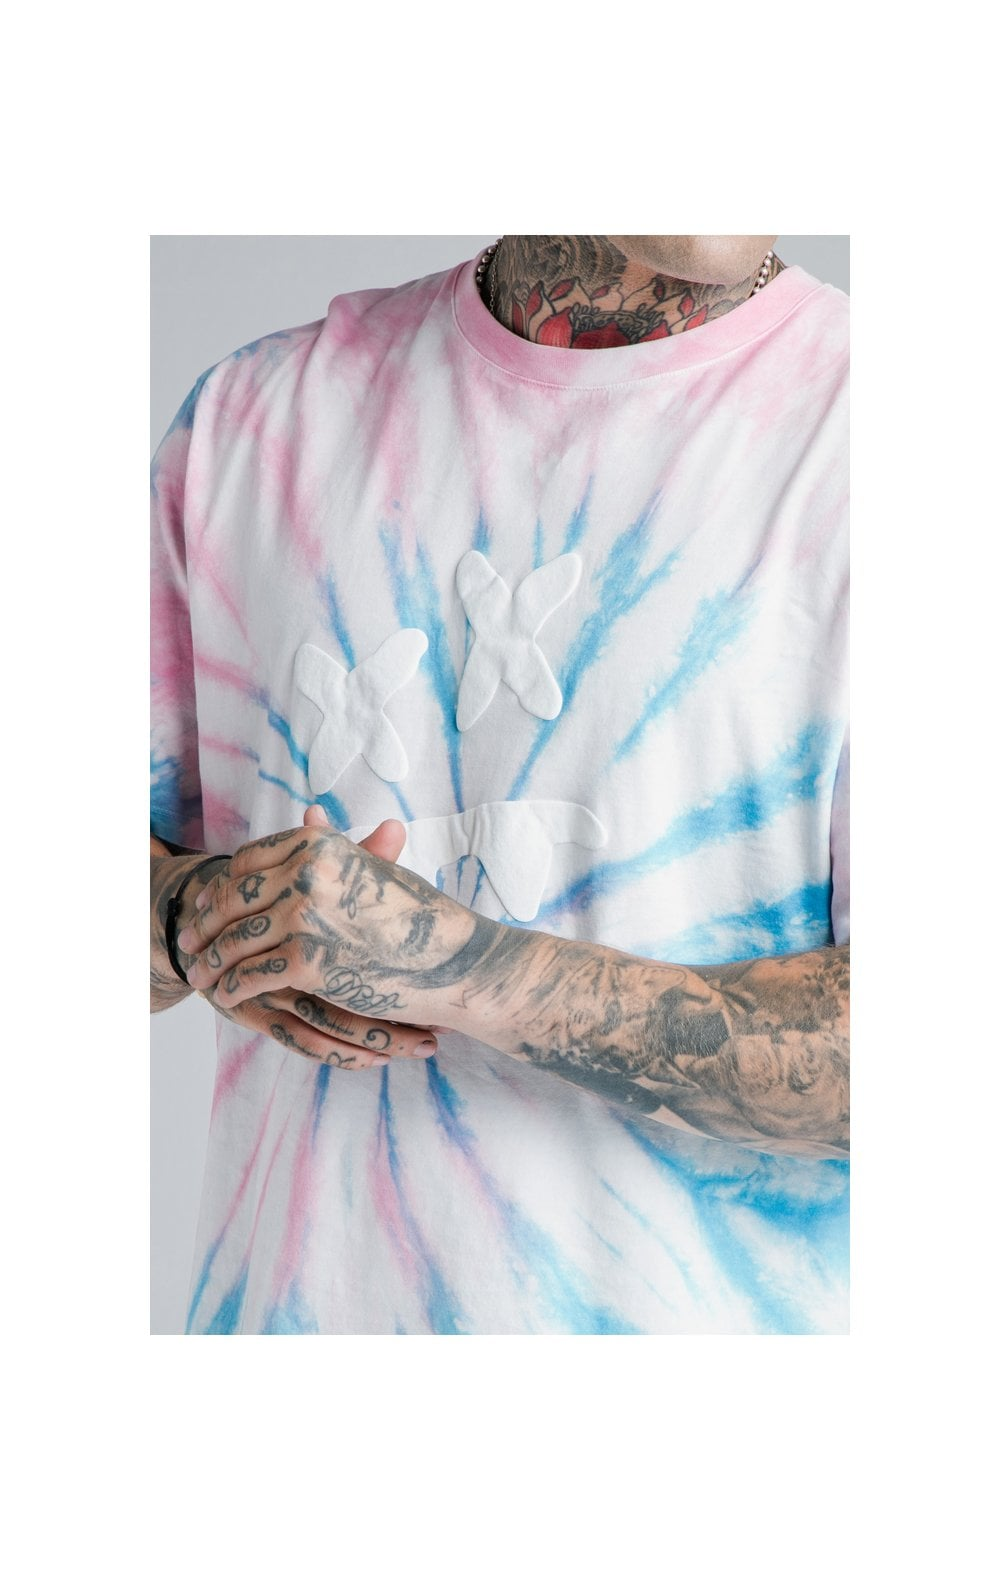 Load image into Gallery viewer, SikSilk X Steve Aoki S/S Oversize Essential Tee – Baby Pink & Blue Tie Dye